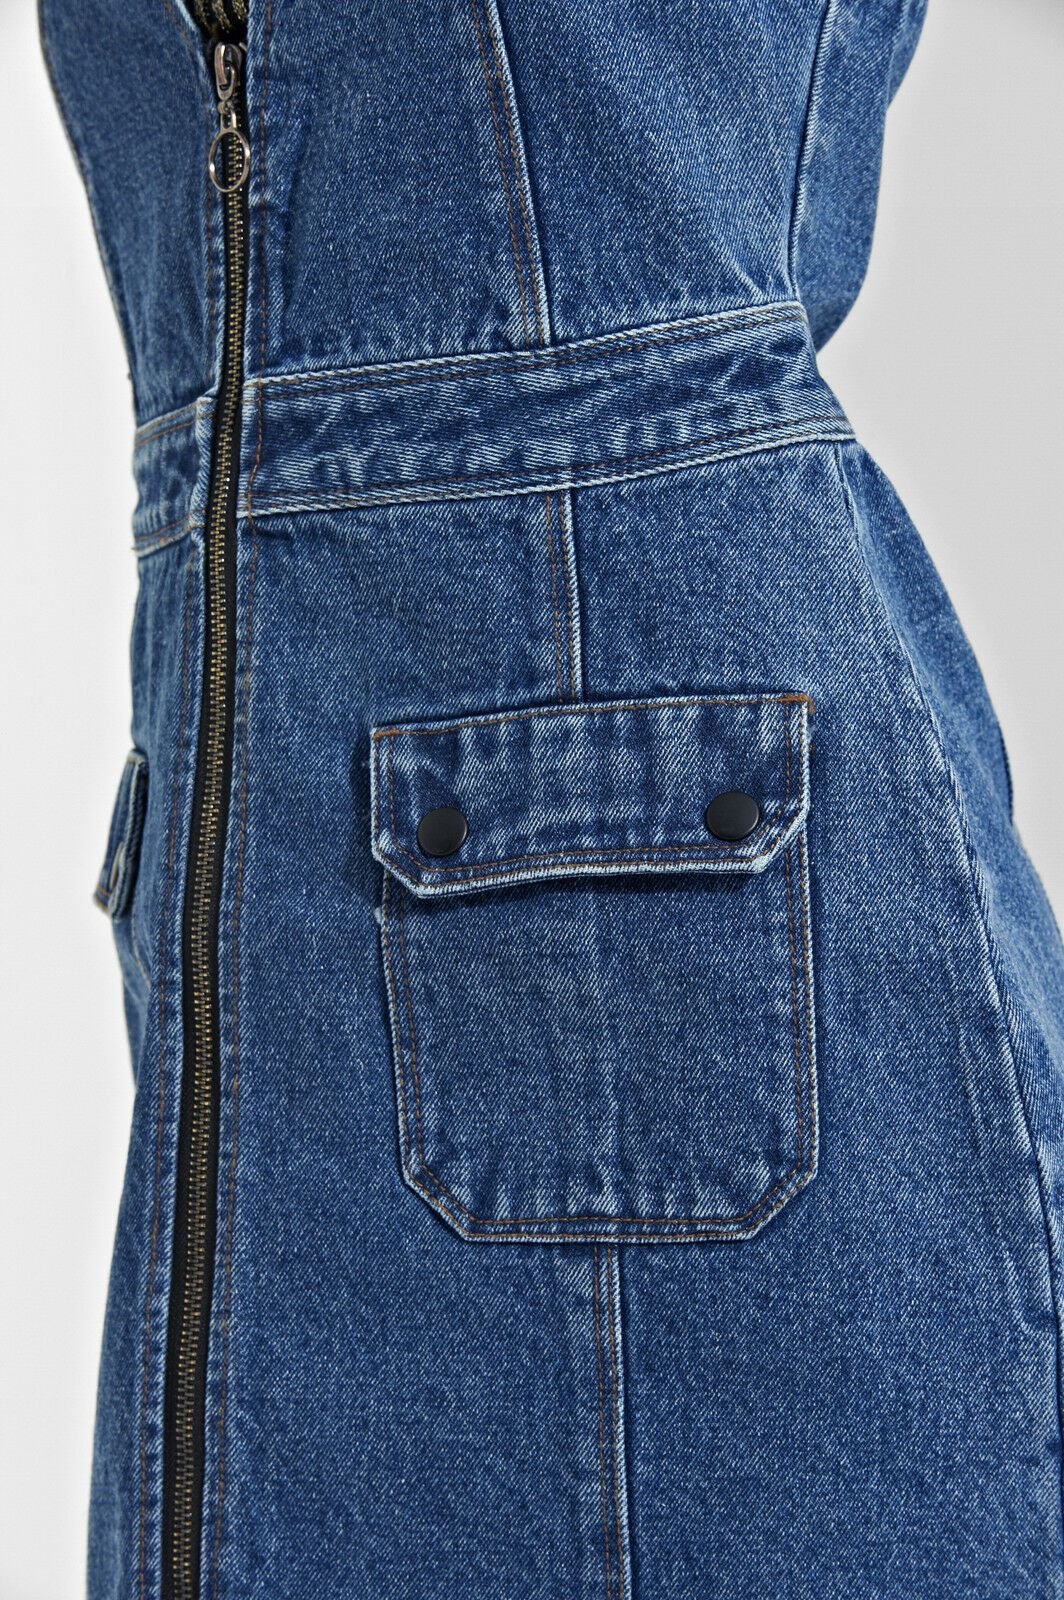 Mid-view of 'Lana' style mini jean dress in mid colour denim with clear view of front pockets and zip.